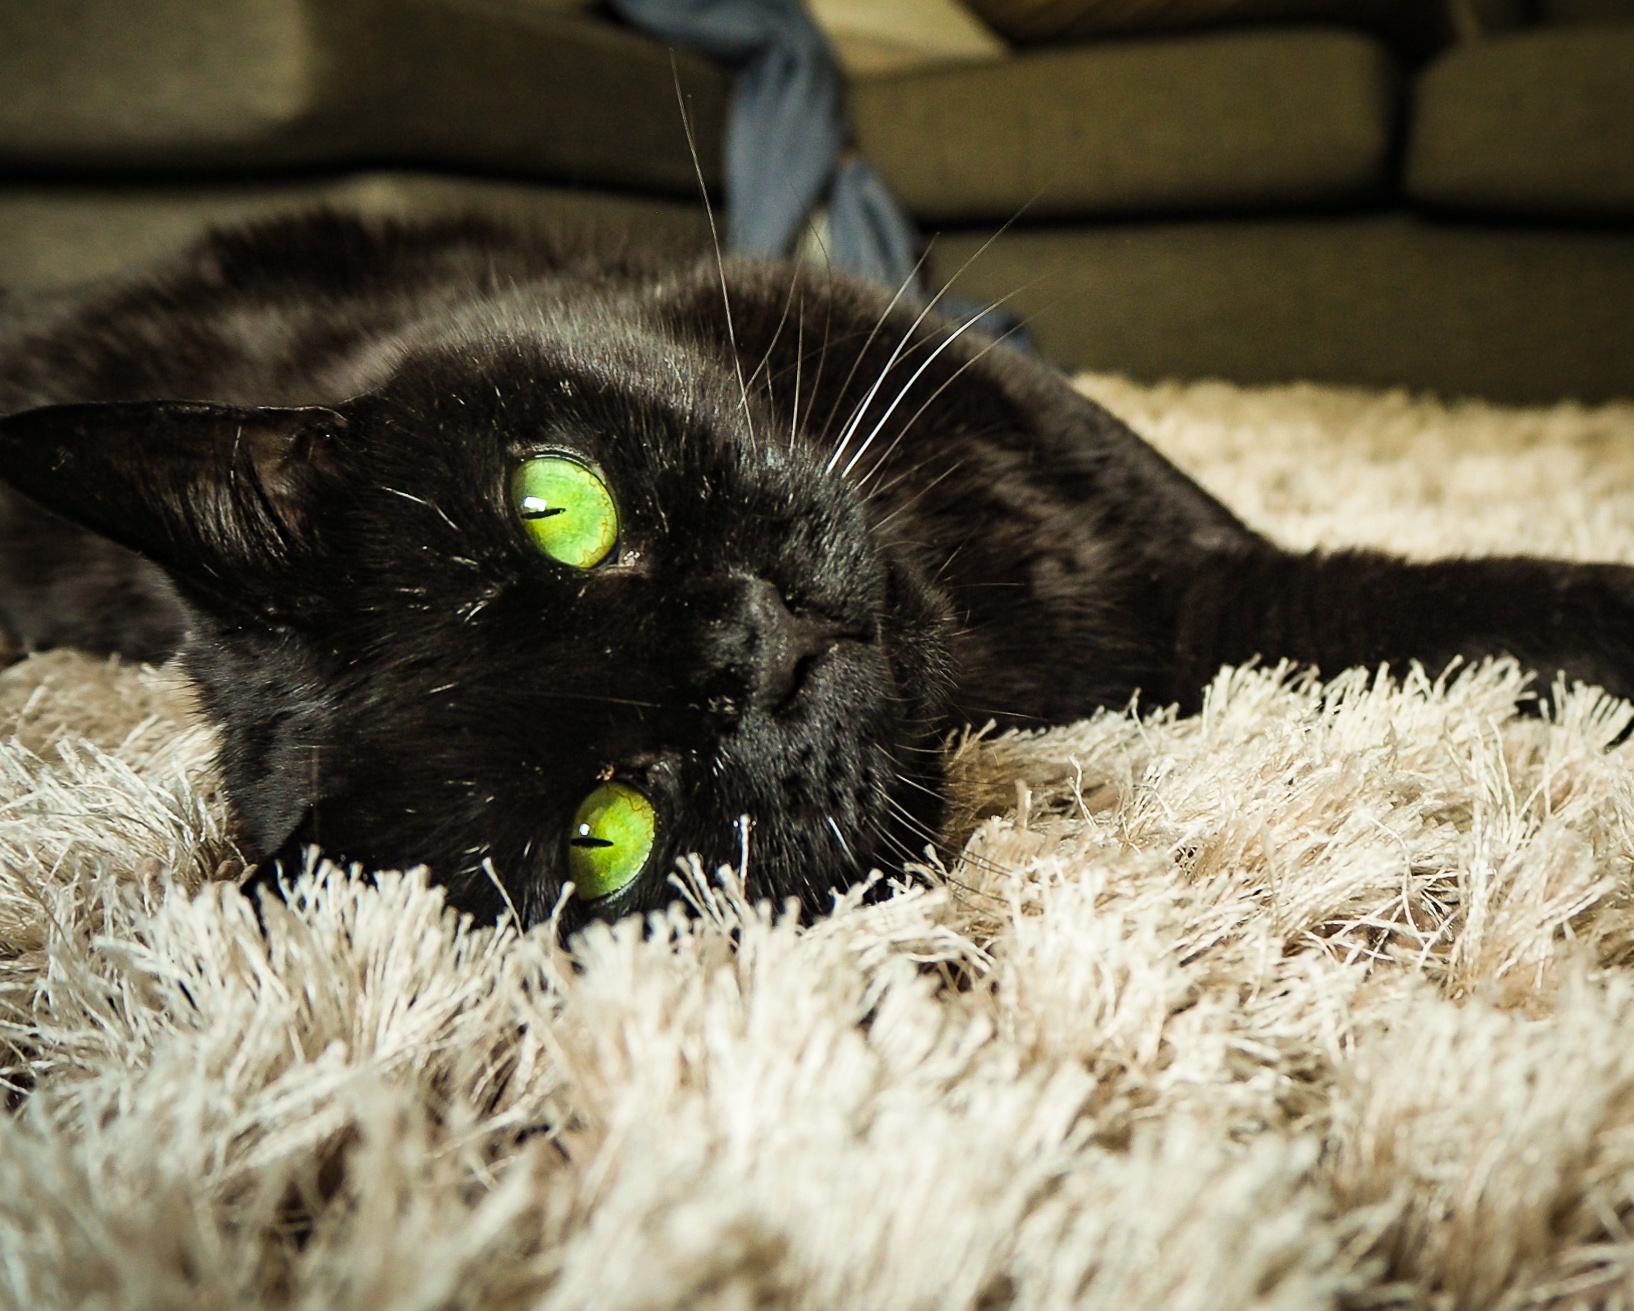 Coco the Black Cat with Green Eyes